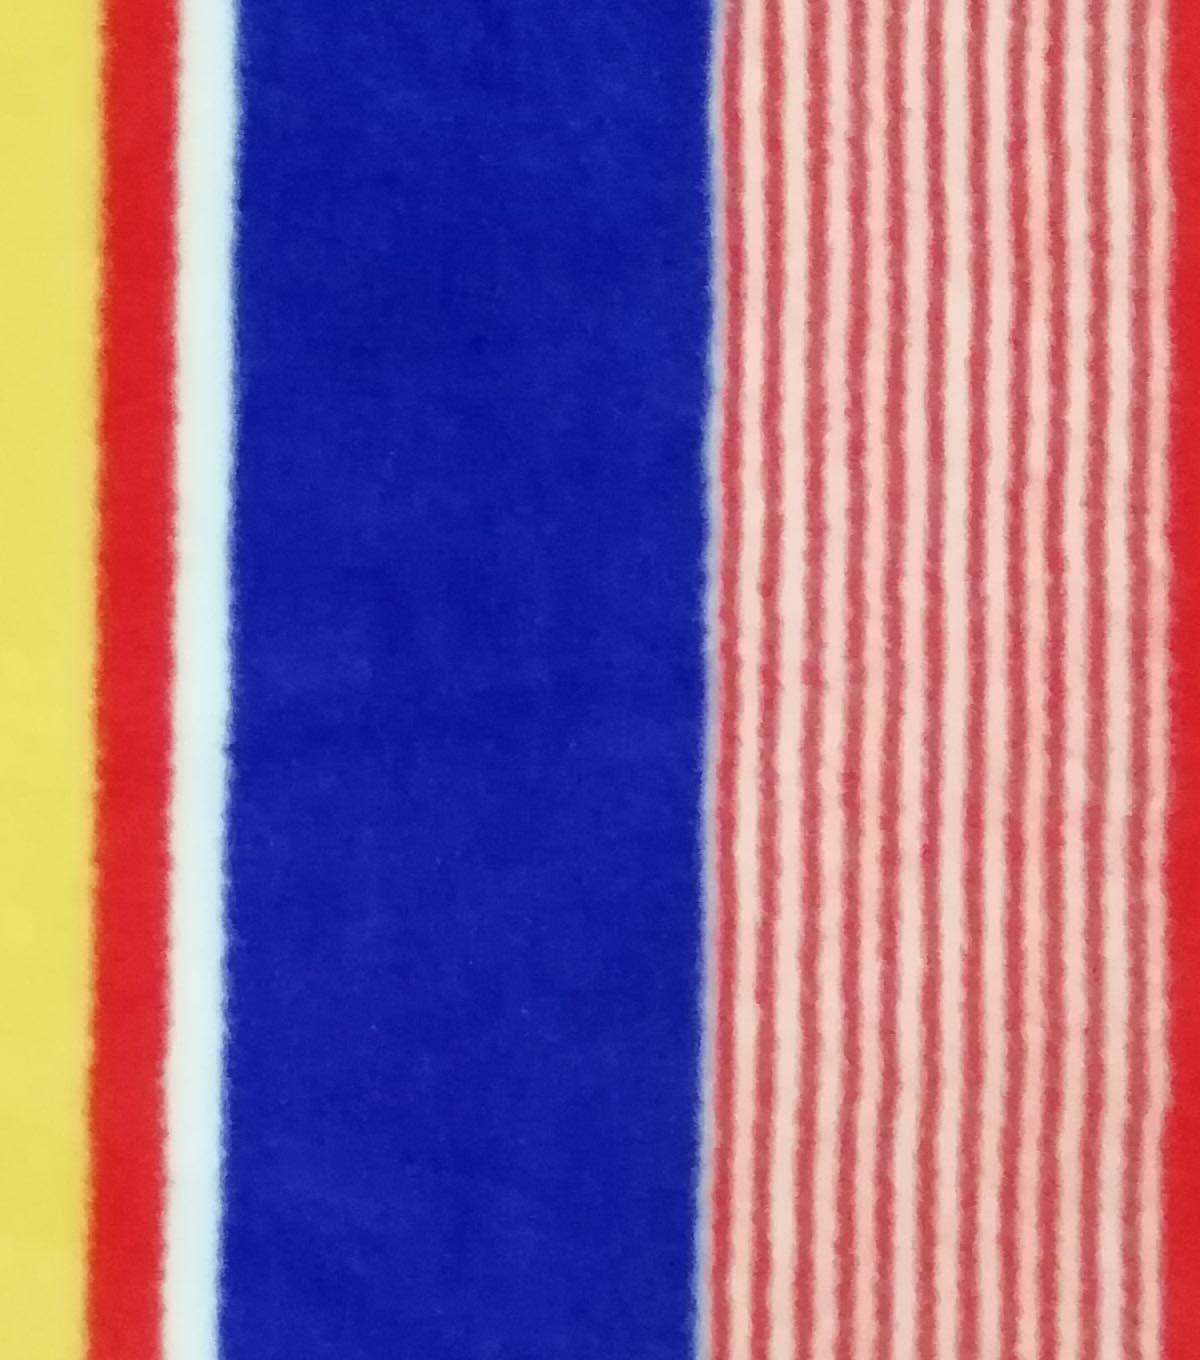 Super Fleece Fabric -Red & Blue Stripes